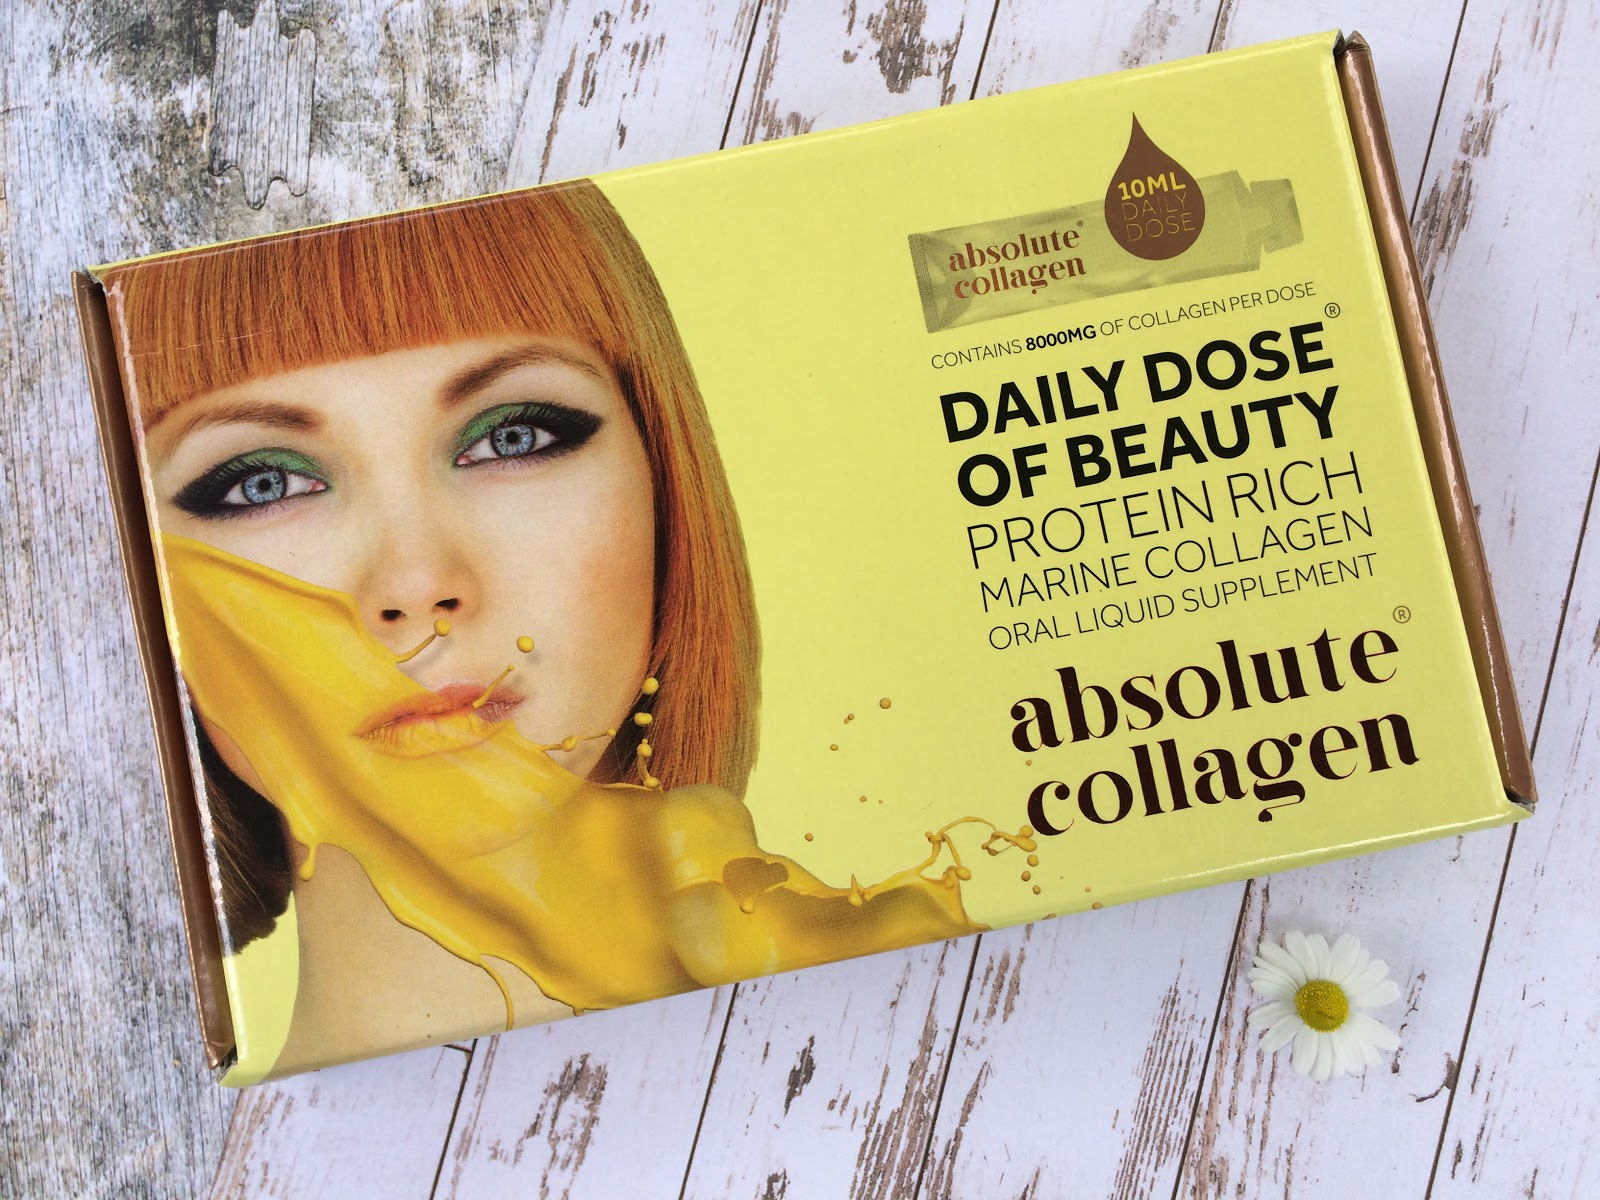 absolute collagen in box